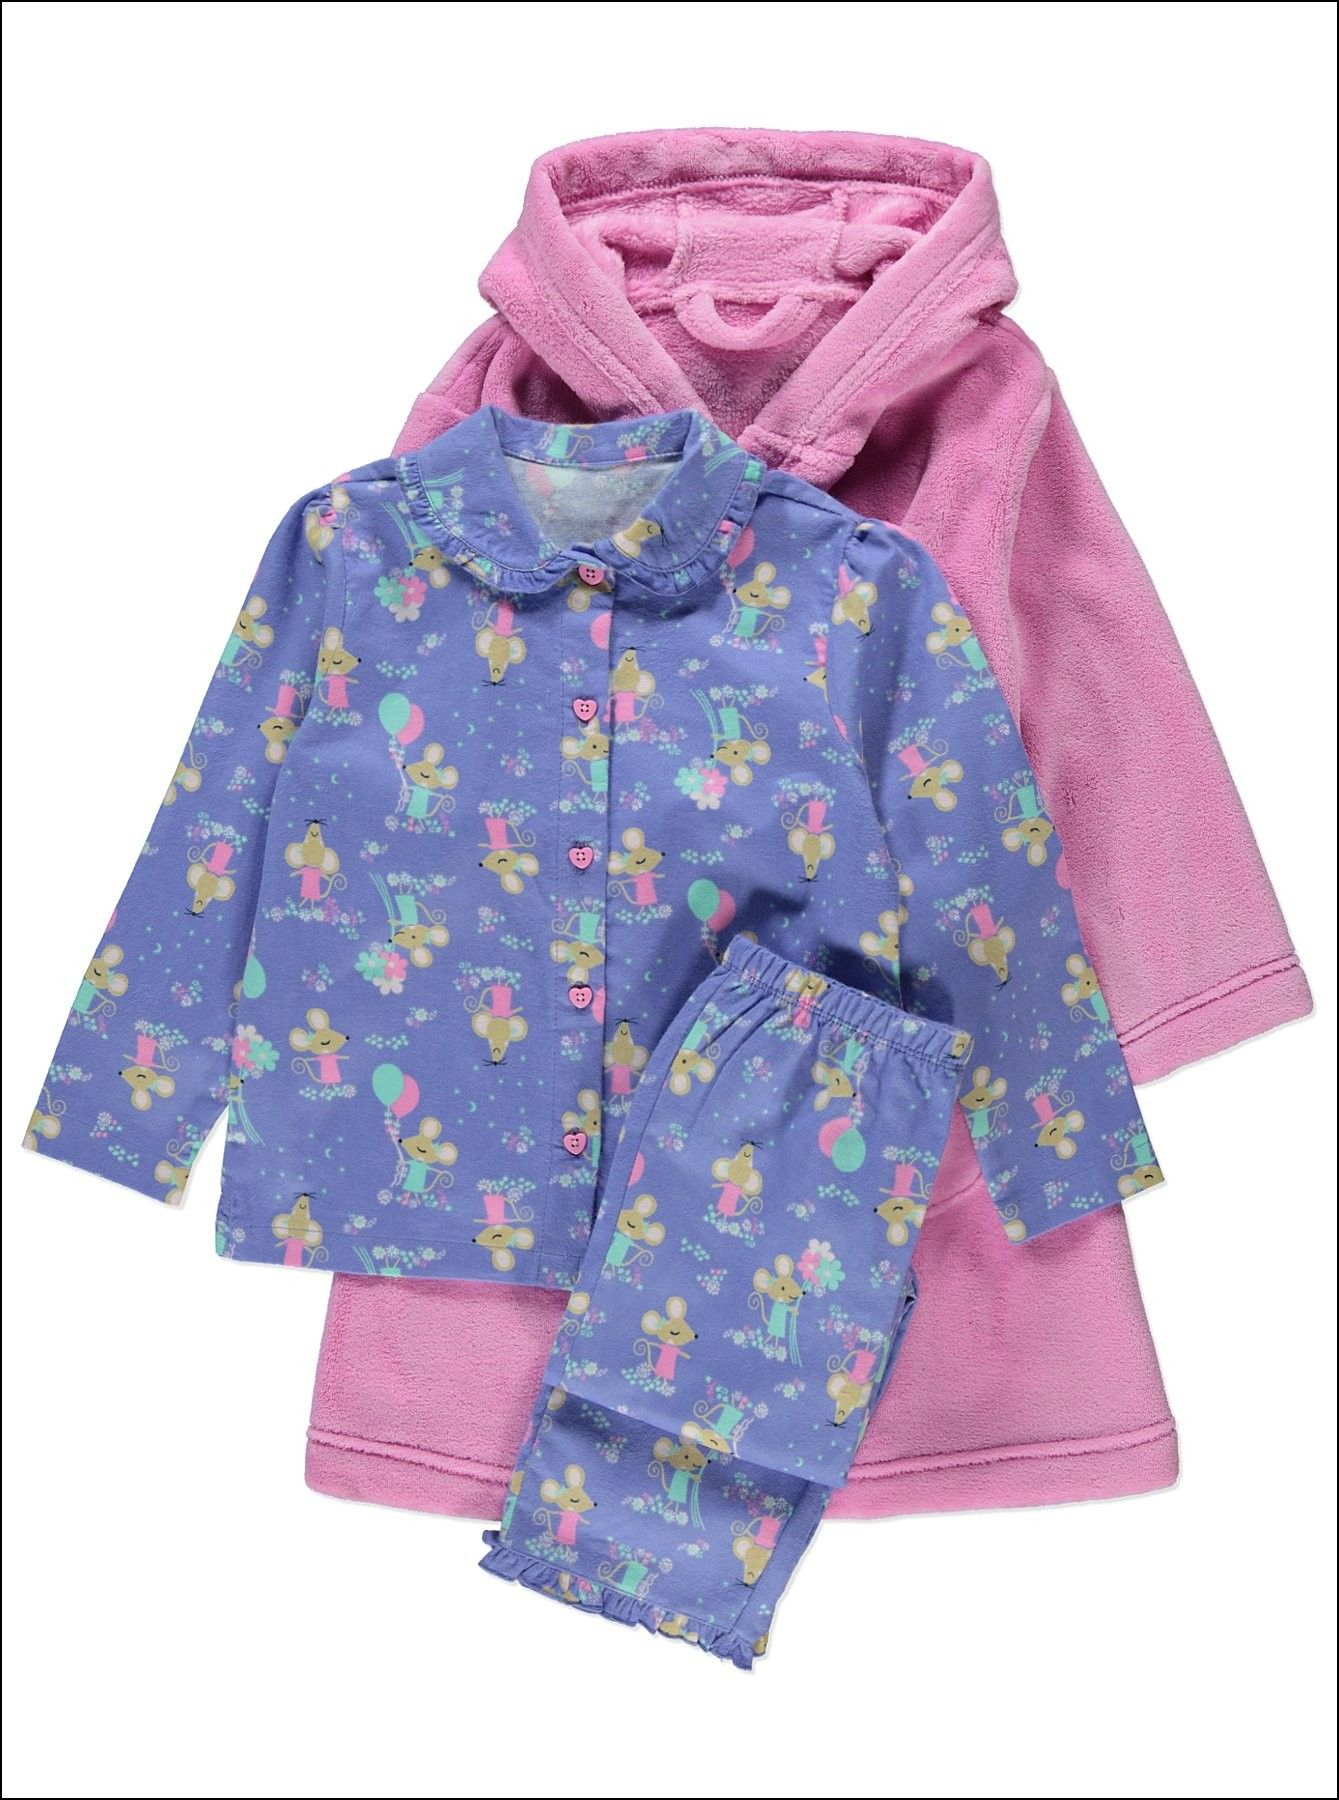 Boys Dressing Gowns asda | Dresses and Gowns Ideas | Pinterest ...